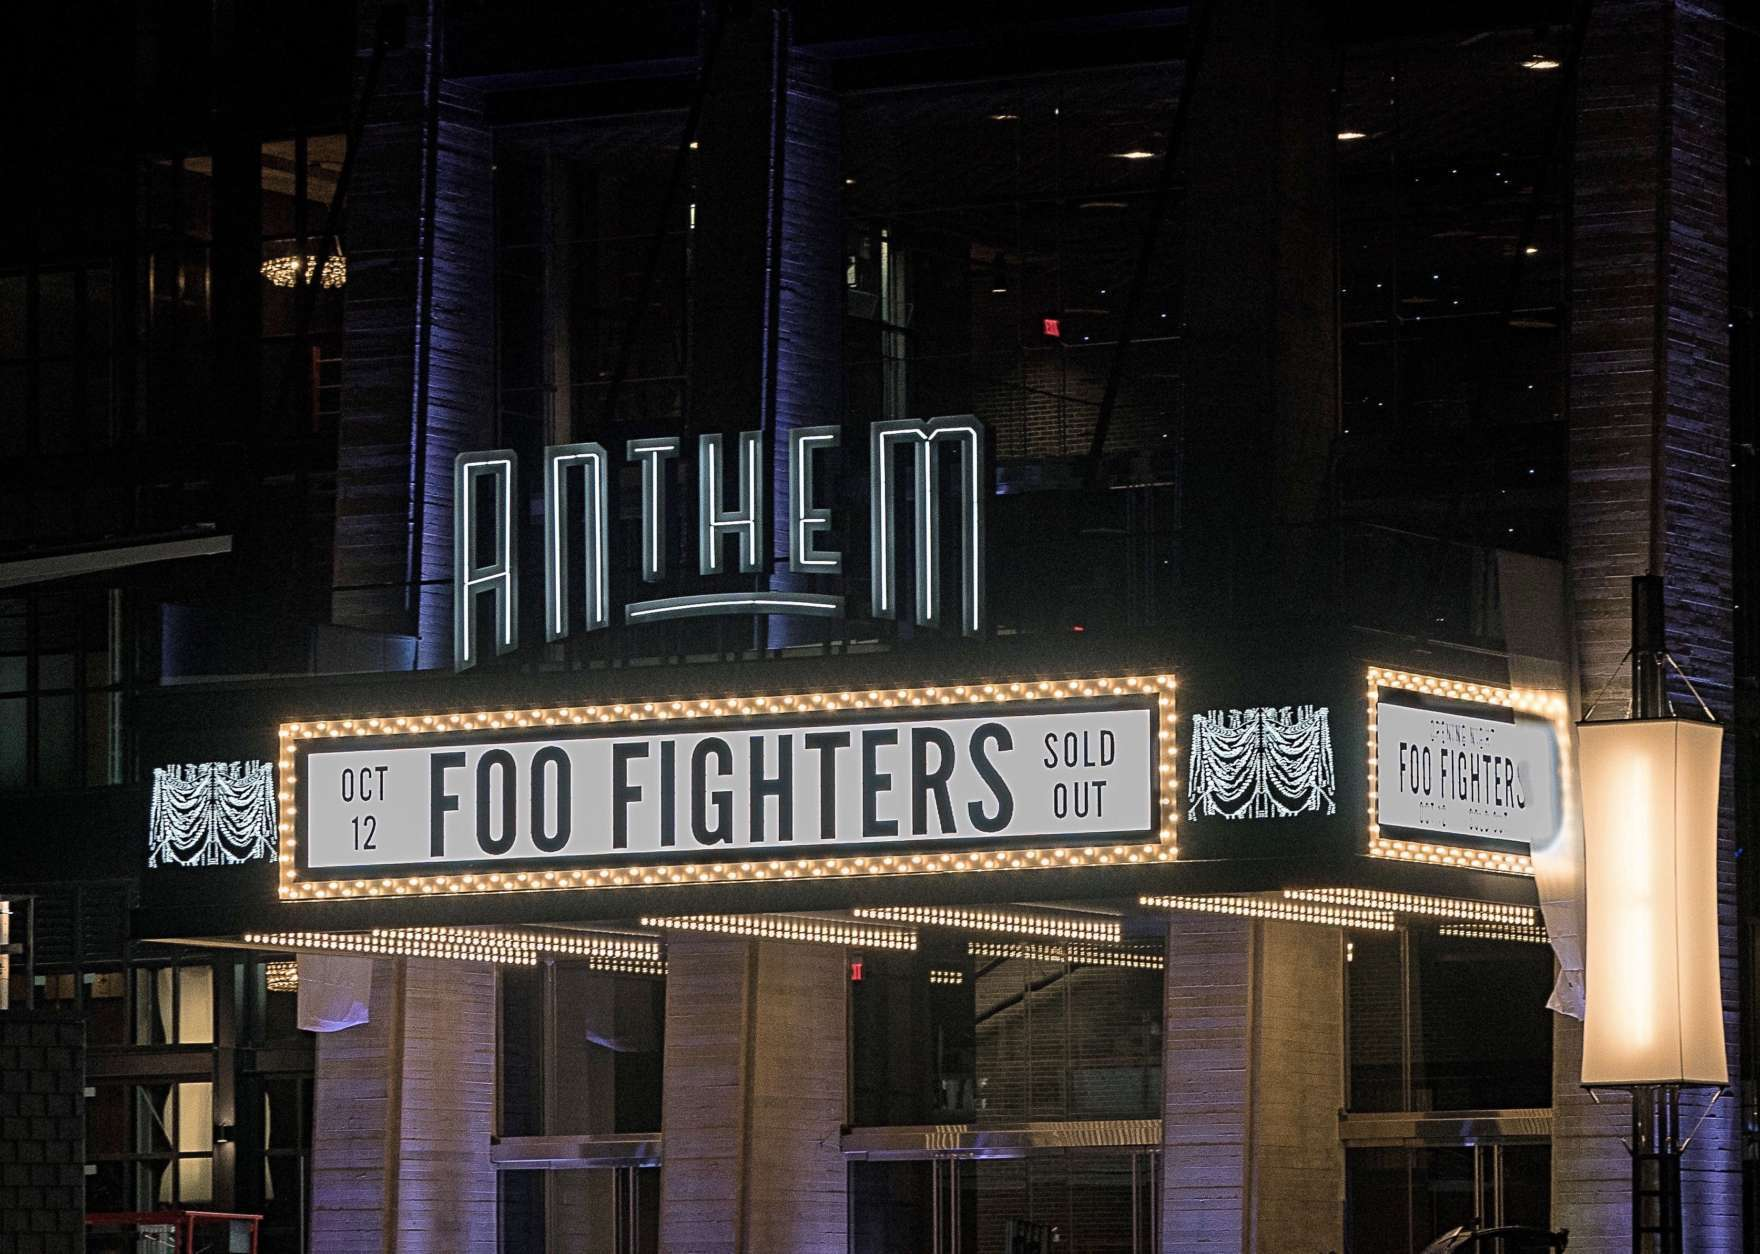 The Anthem marque looks even sexier at night. (John Shore)